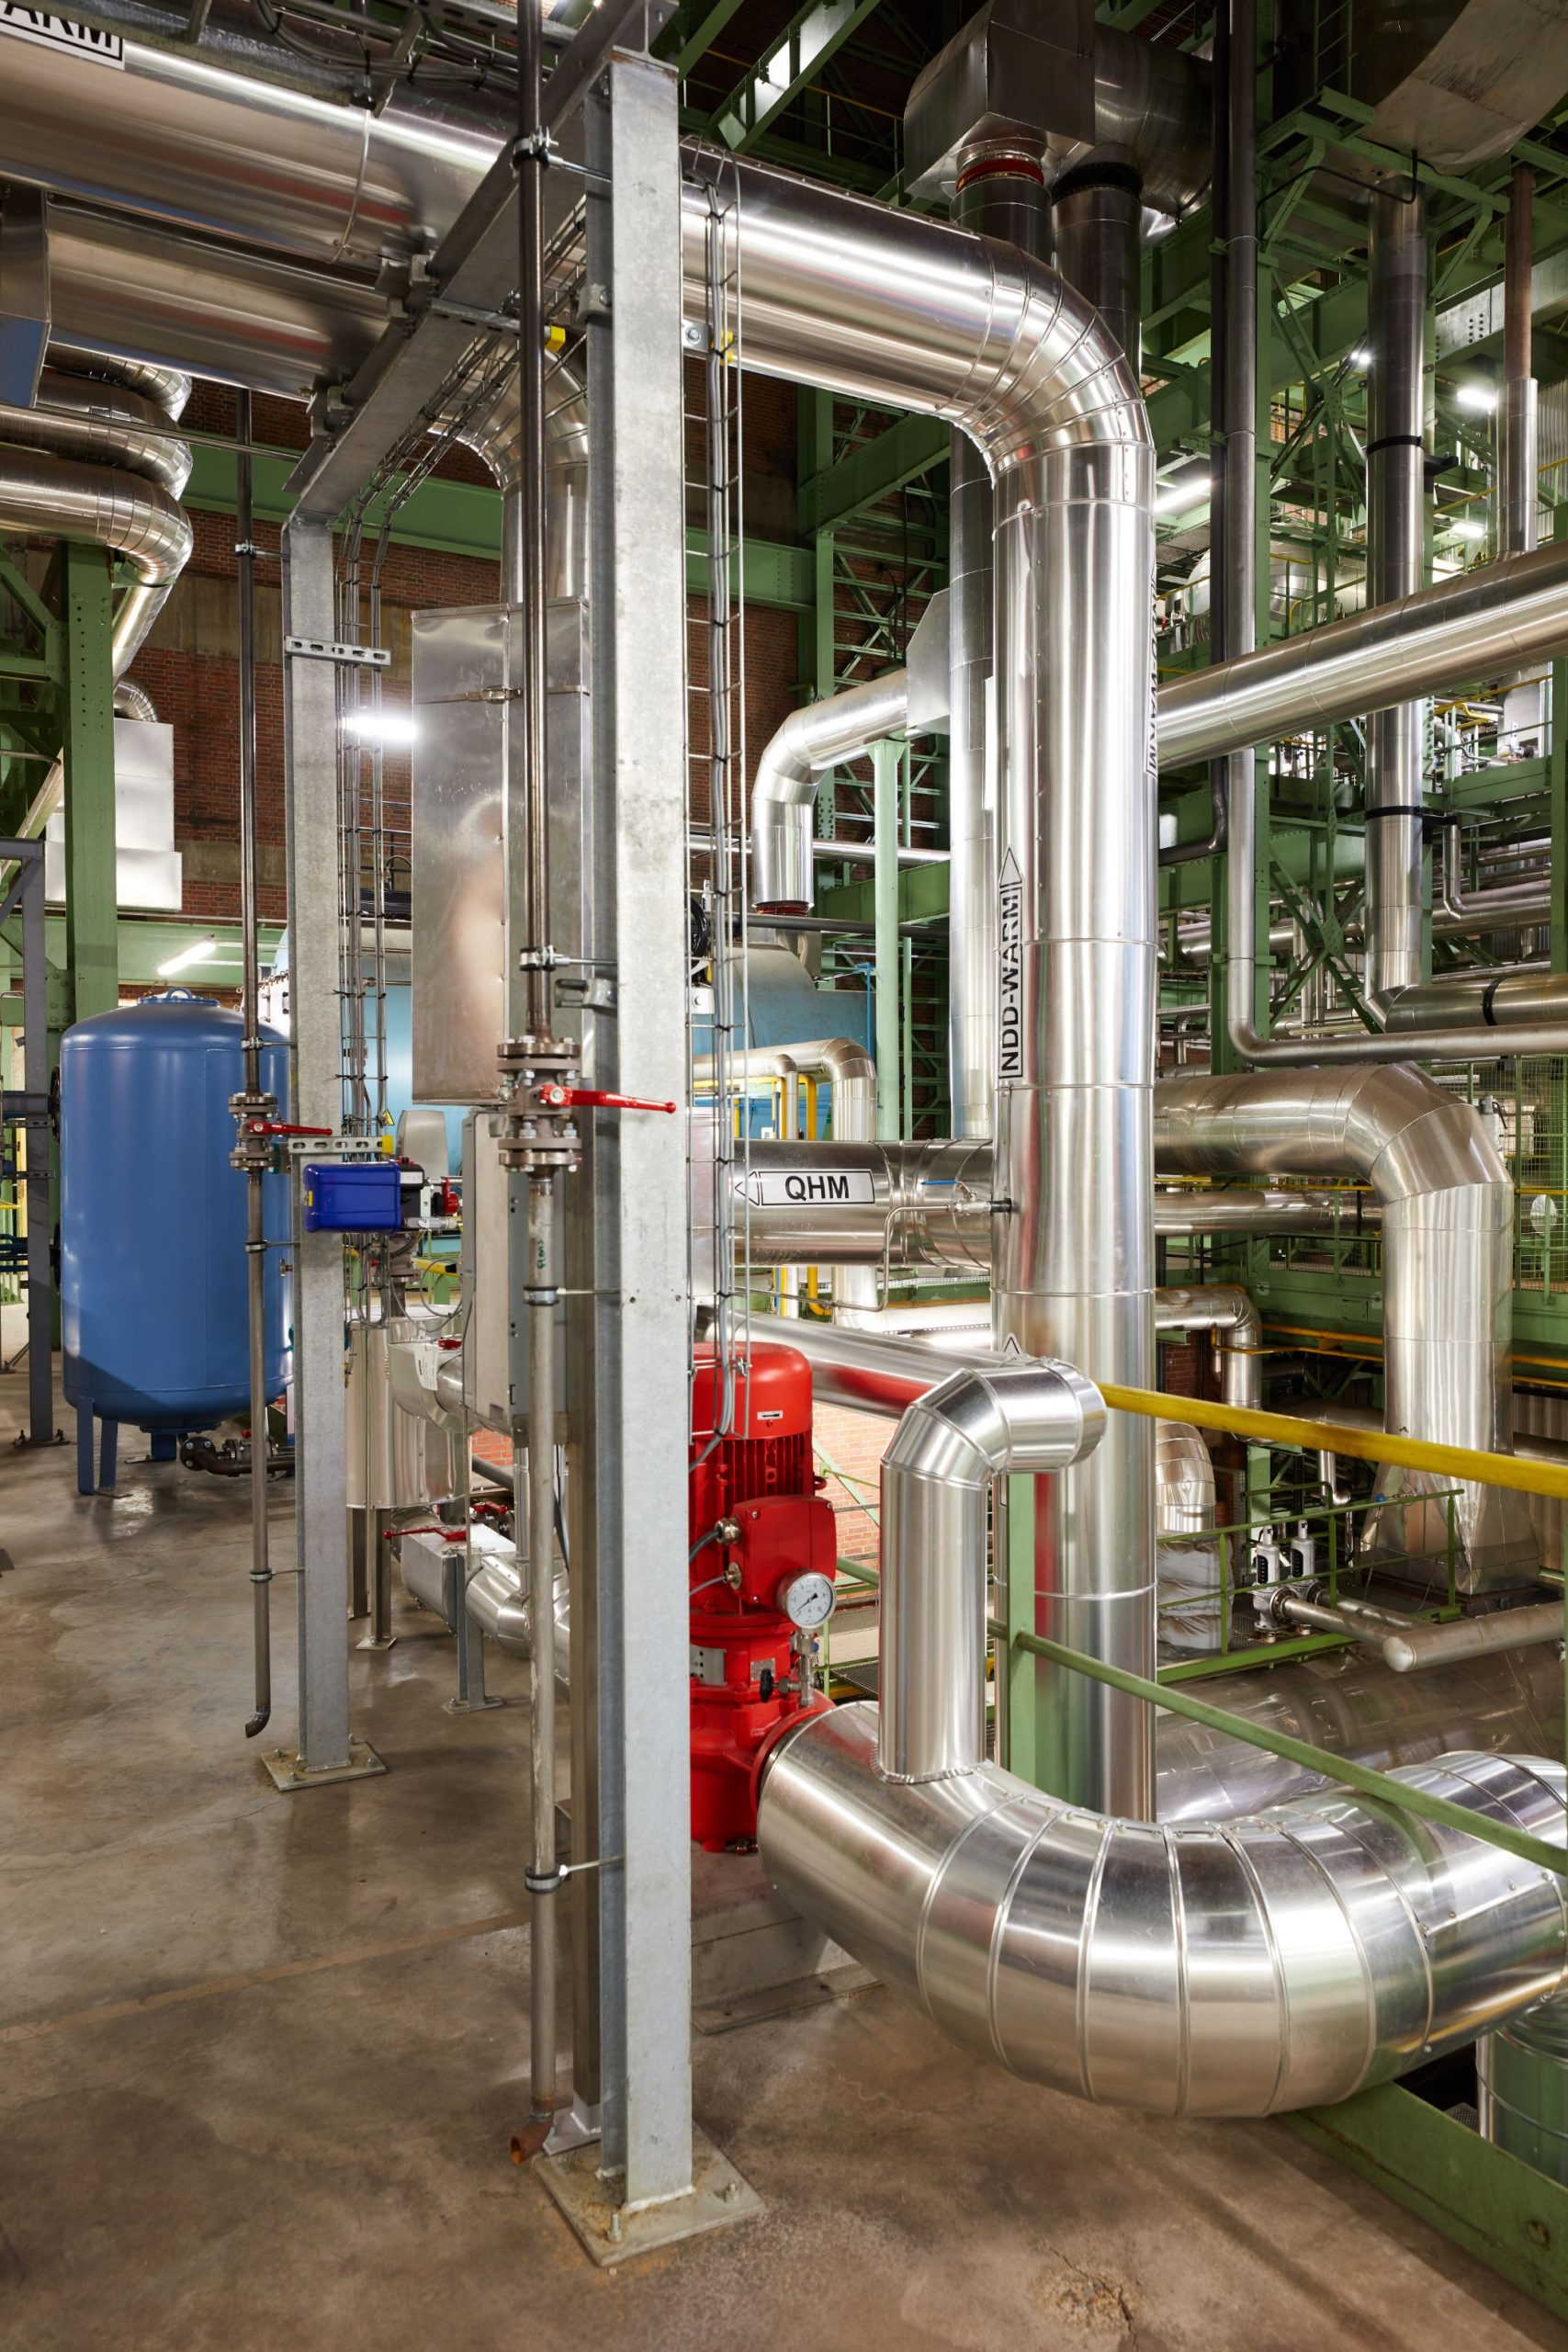 ATS Groep industrial piping